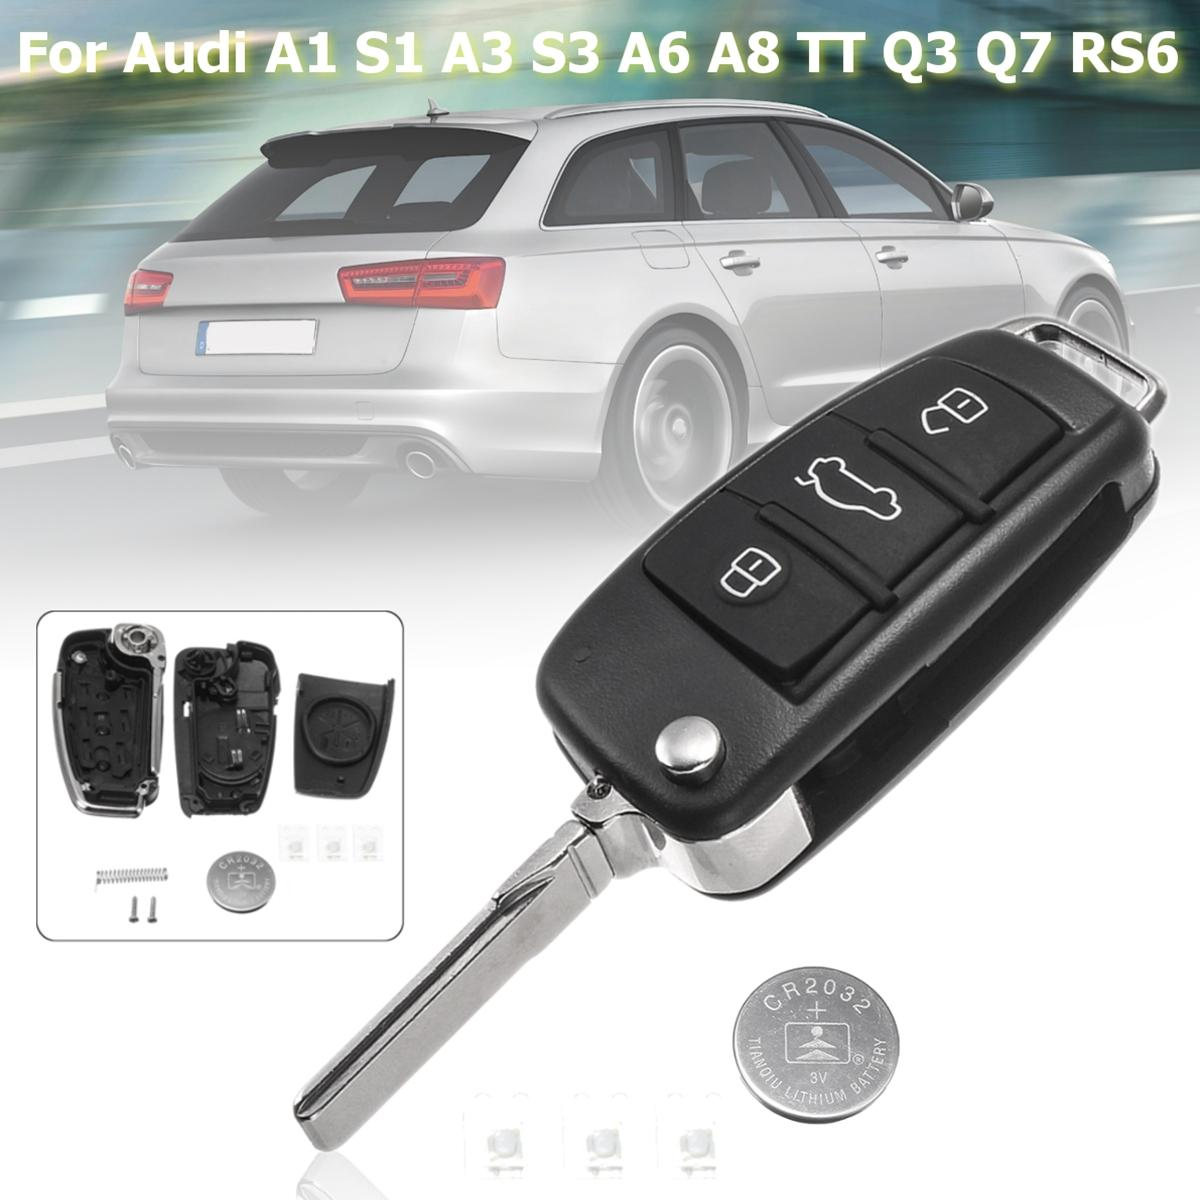 hight resolution of with 3 switches 1 battery 3 buttons remote key fob case shell for audi a3 a4 a6 a8 q7 tt 1997 2018 2017 2016 2015 2010 keys in car keys in the car from